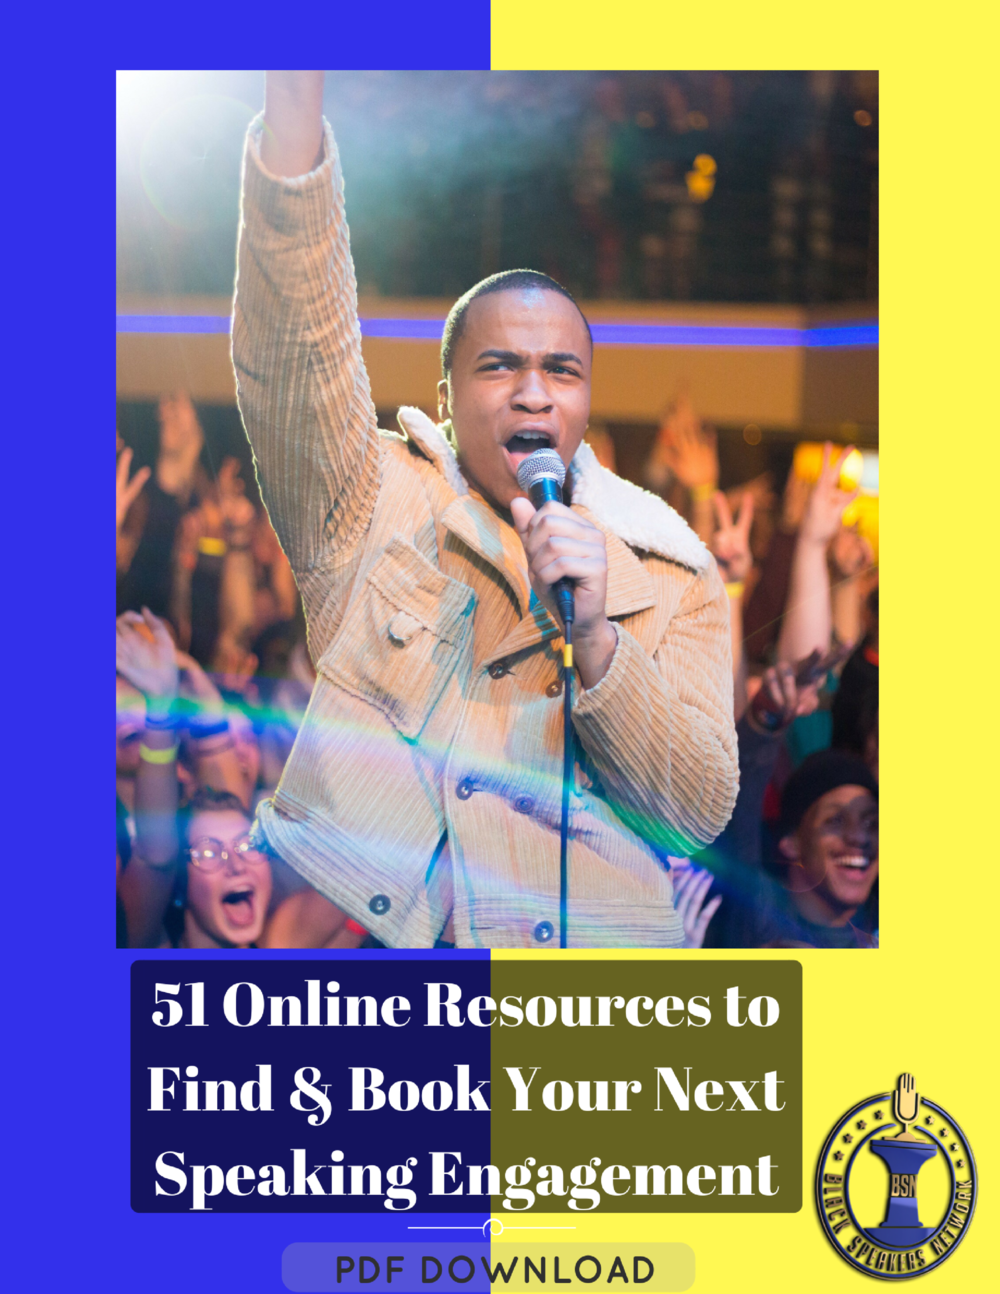 One of the Most Comprehensive Collection of Resources to Find Speaking Engagements Anywhere on the Web!  (PDF Download) - Only $9.99